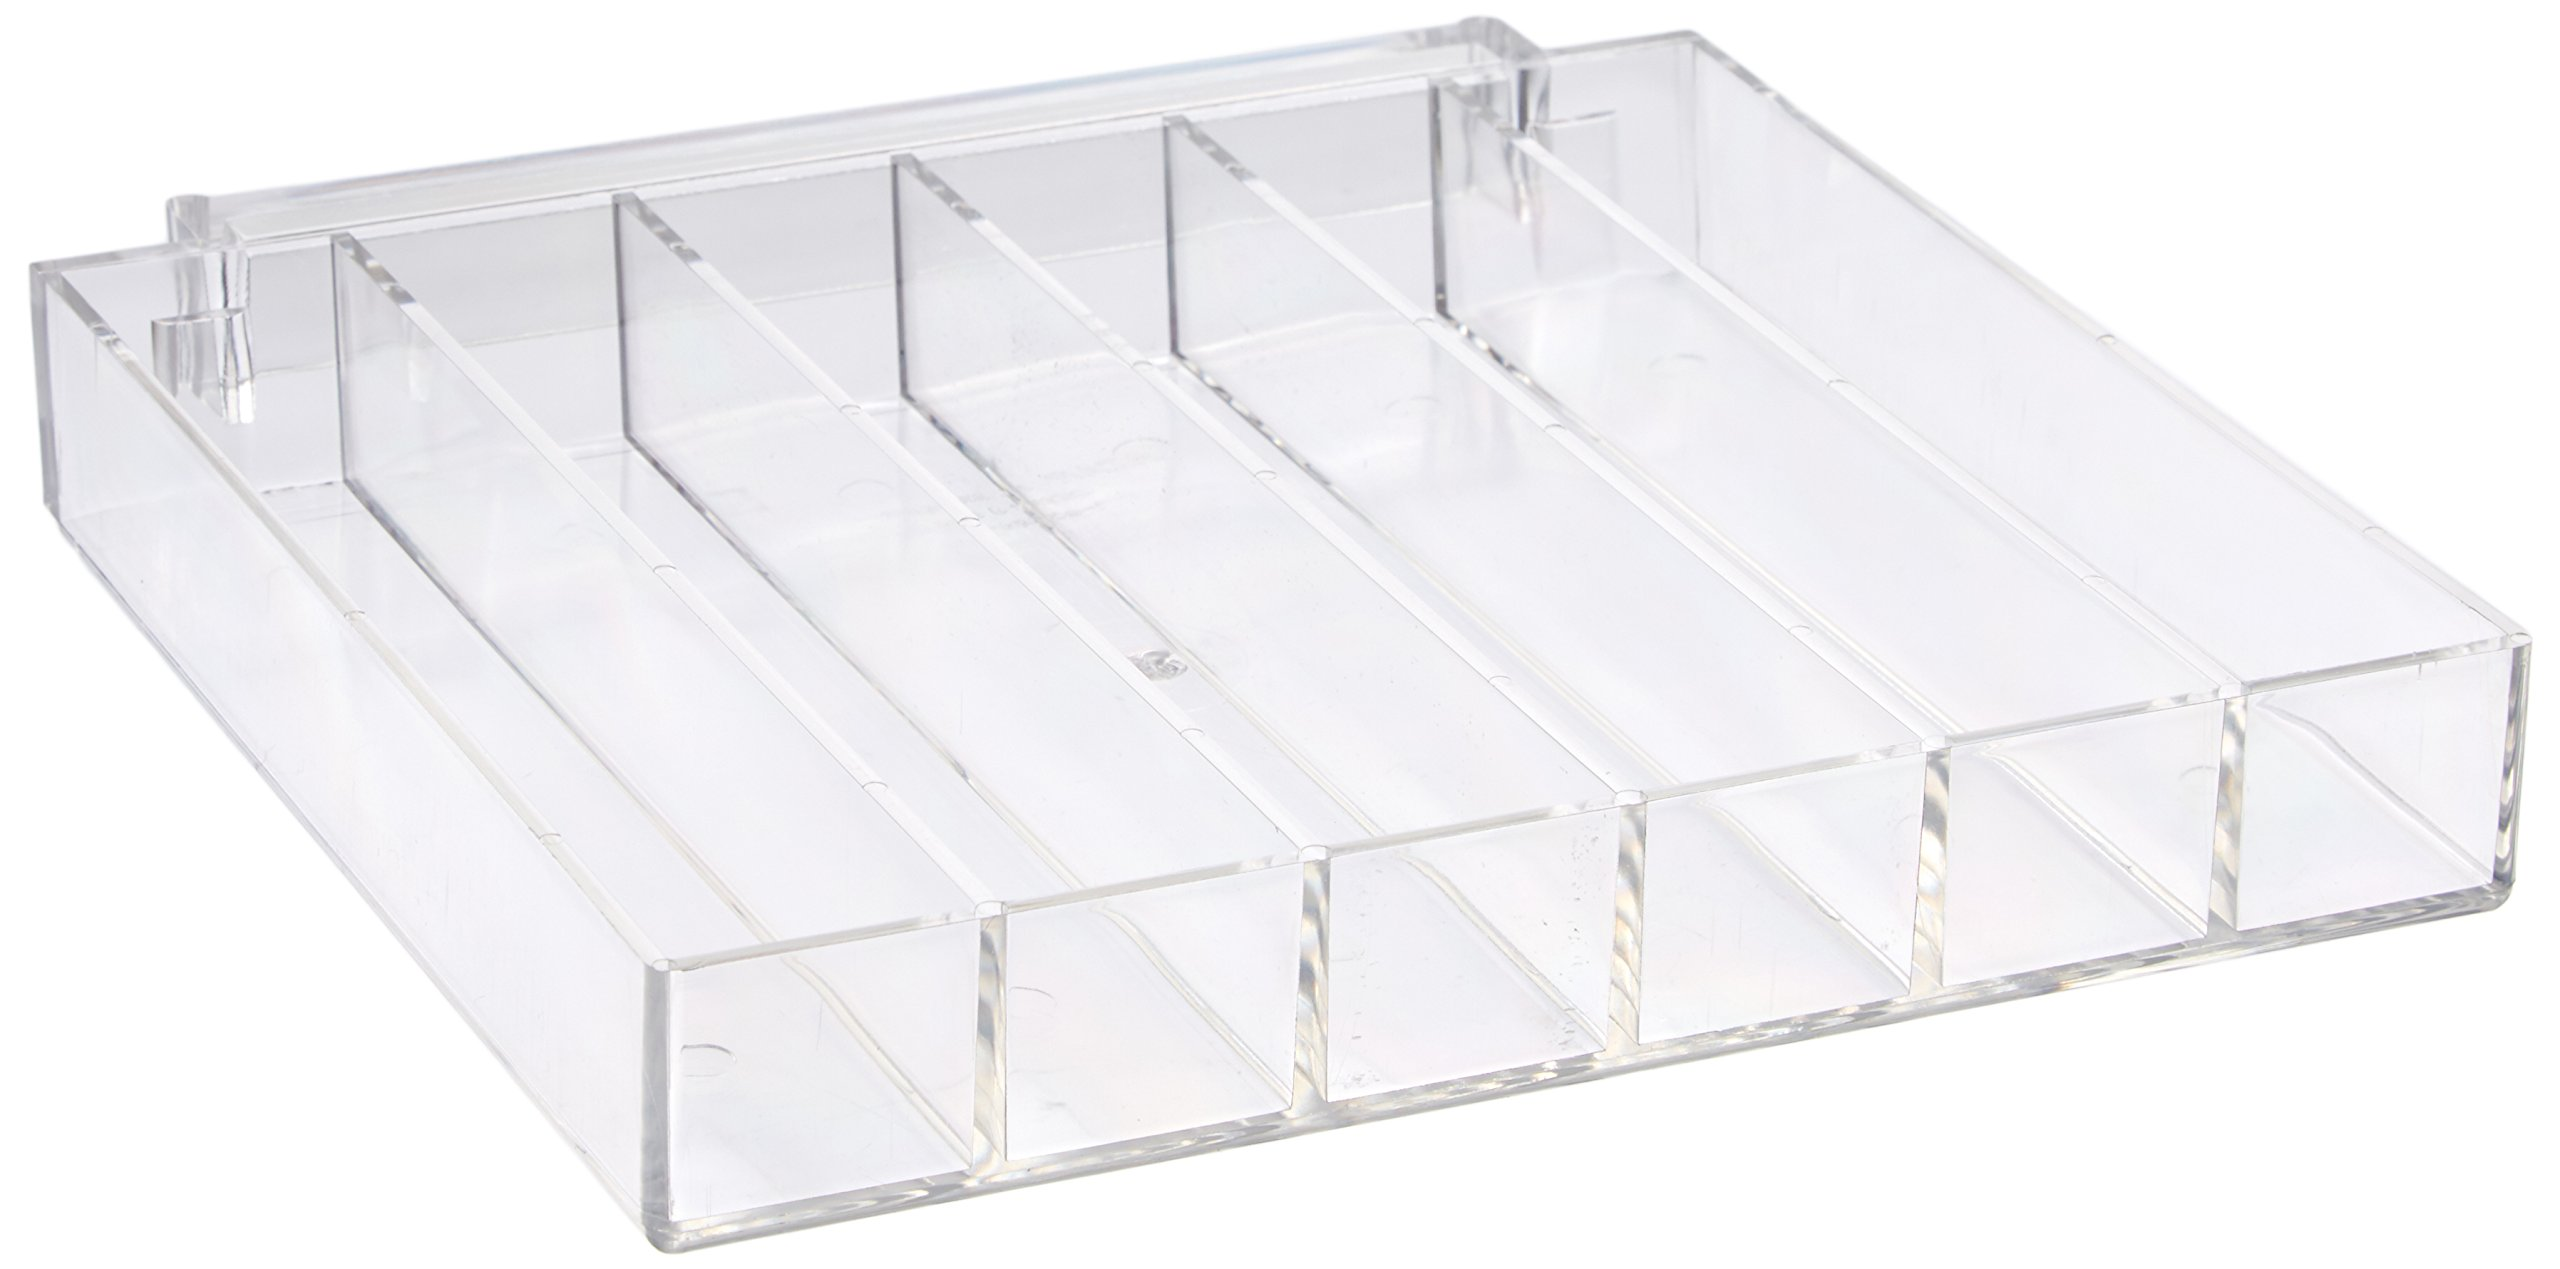 "Azar Displays 225560 8.625"" W x 7.5"" D x 1.25"" H 6-Compartment Tray - Each Slot Measures 1.25"" W x 7.25""D (2 Pack)"